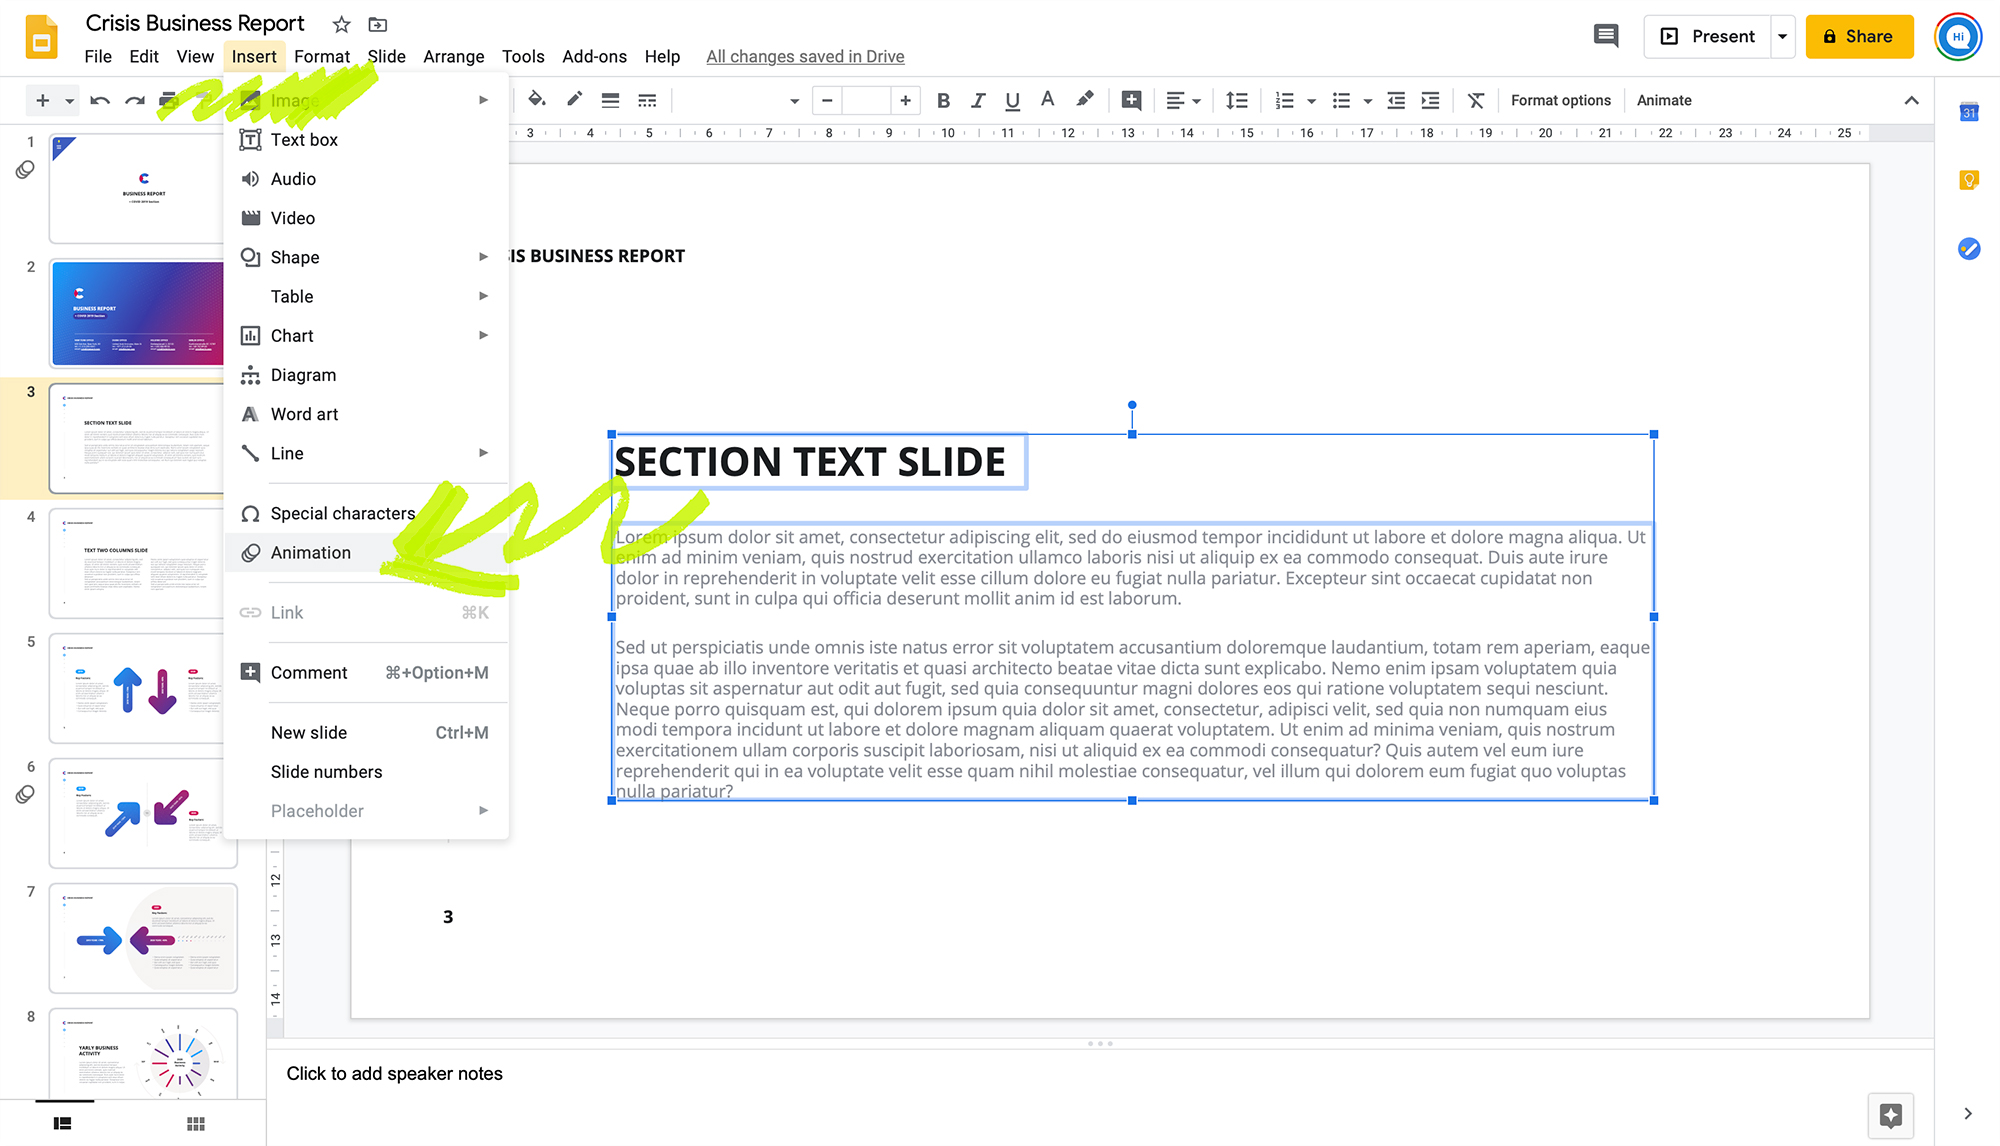 Adding Animations in Google Slides